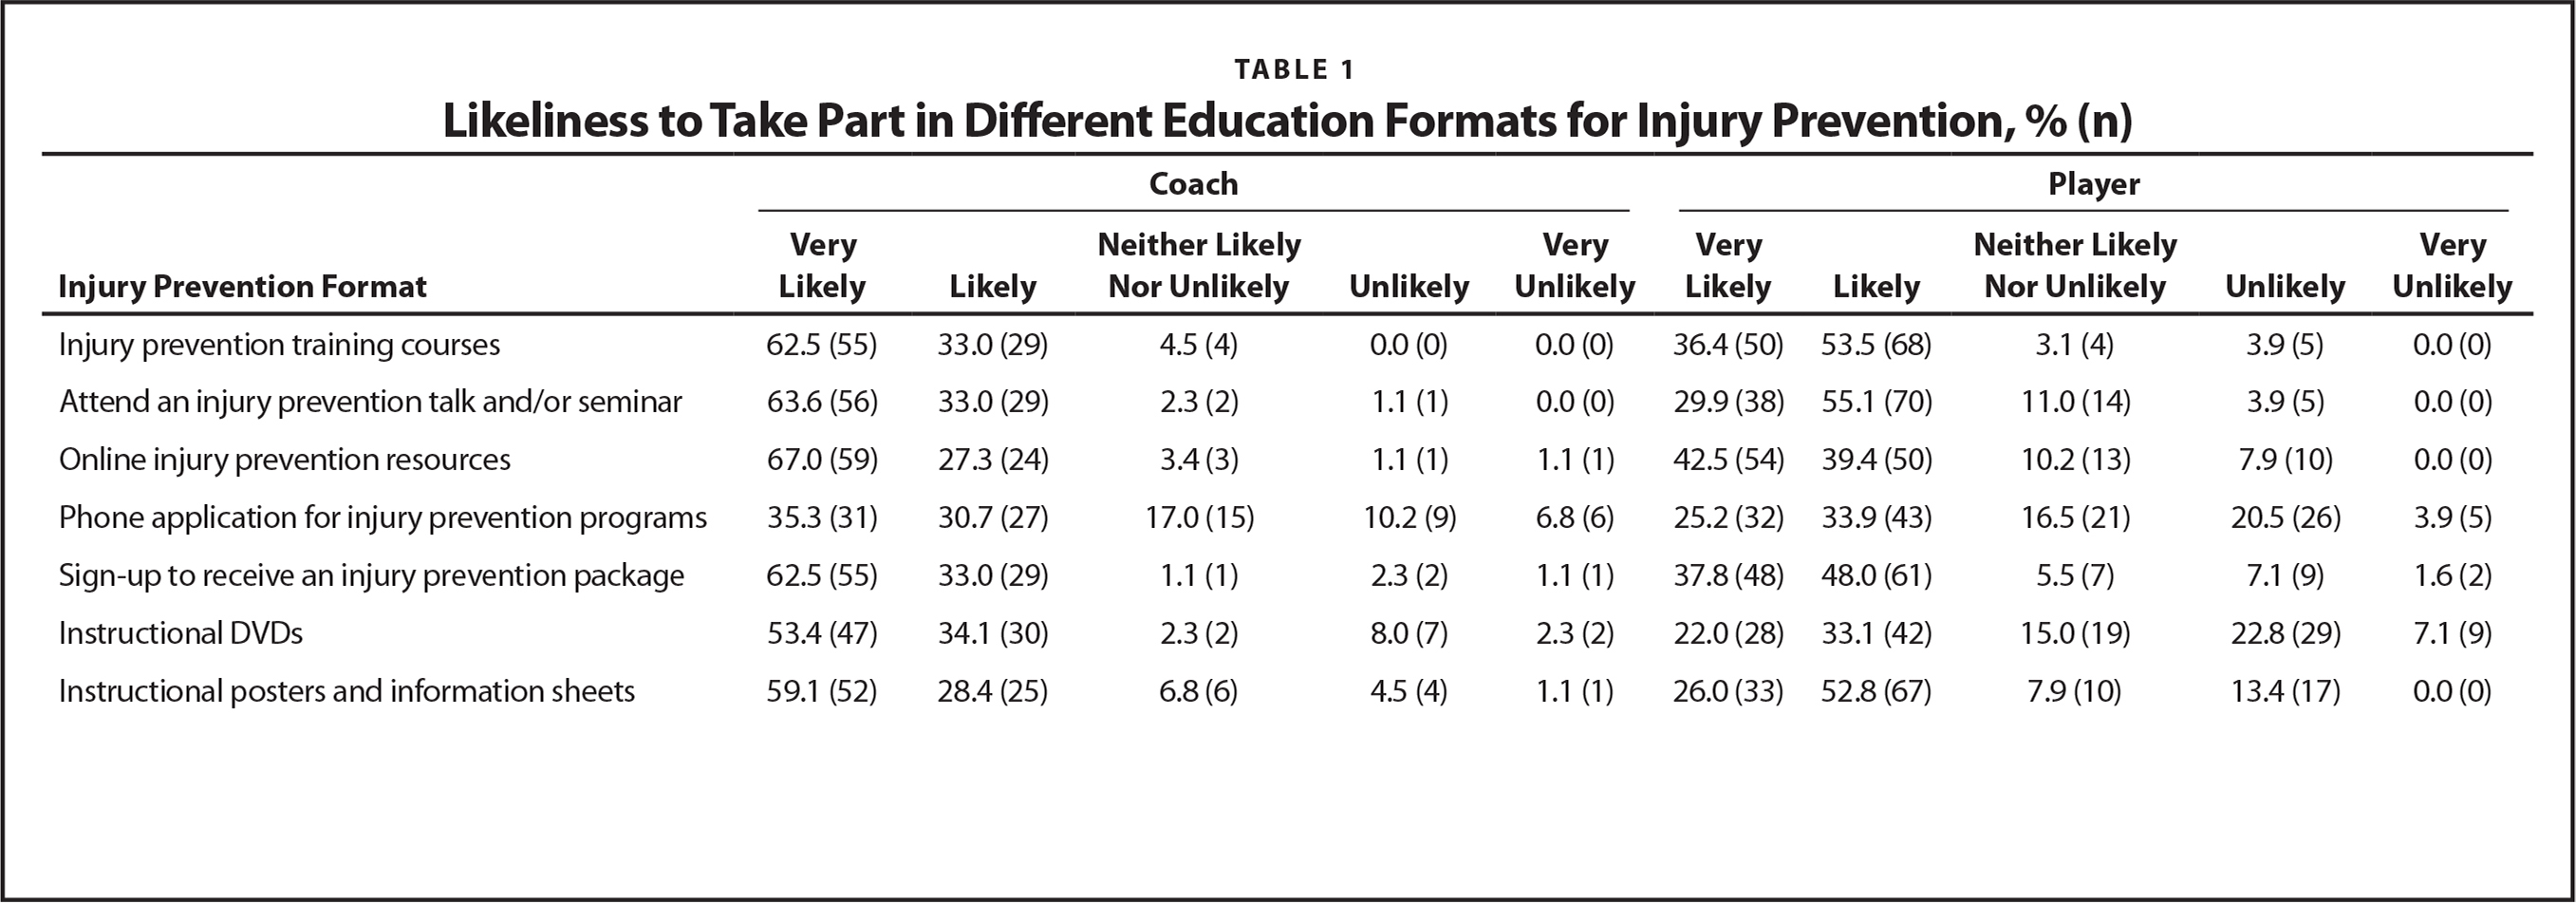 Likeliness to Take Part in Different Education Formats for Injury Prevention, % (n)